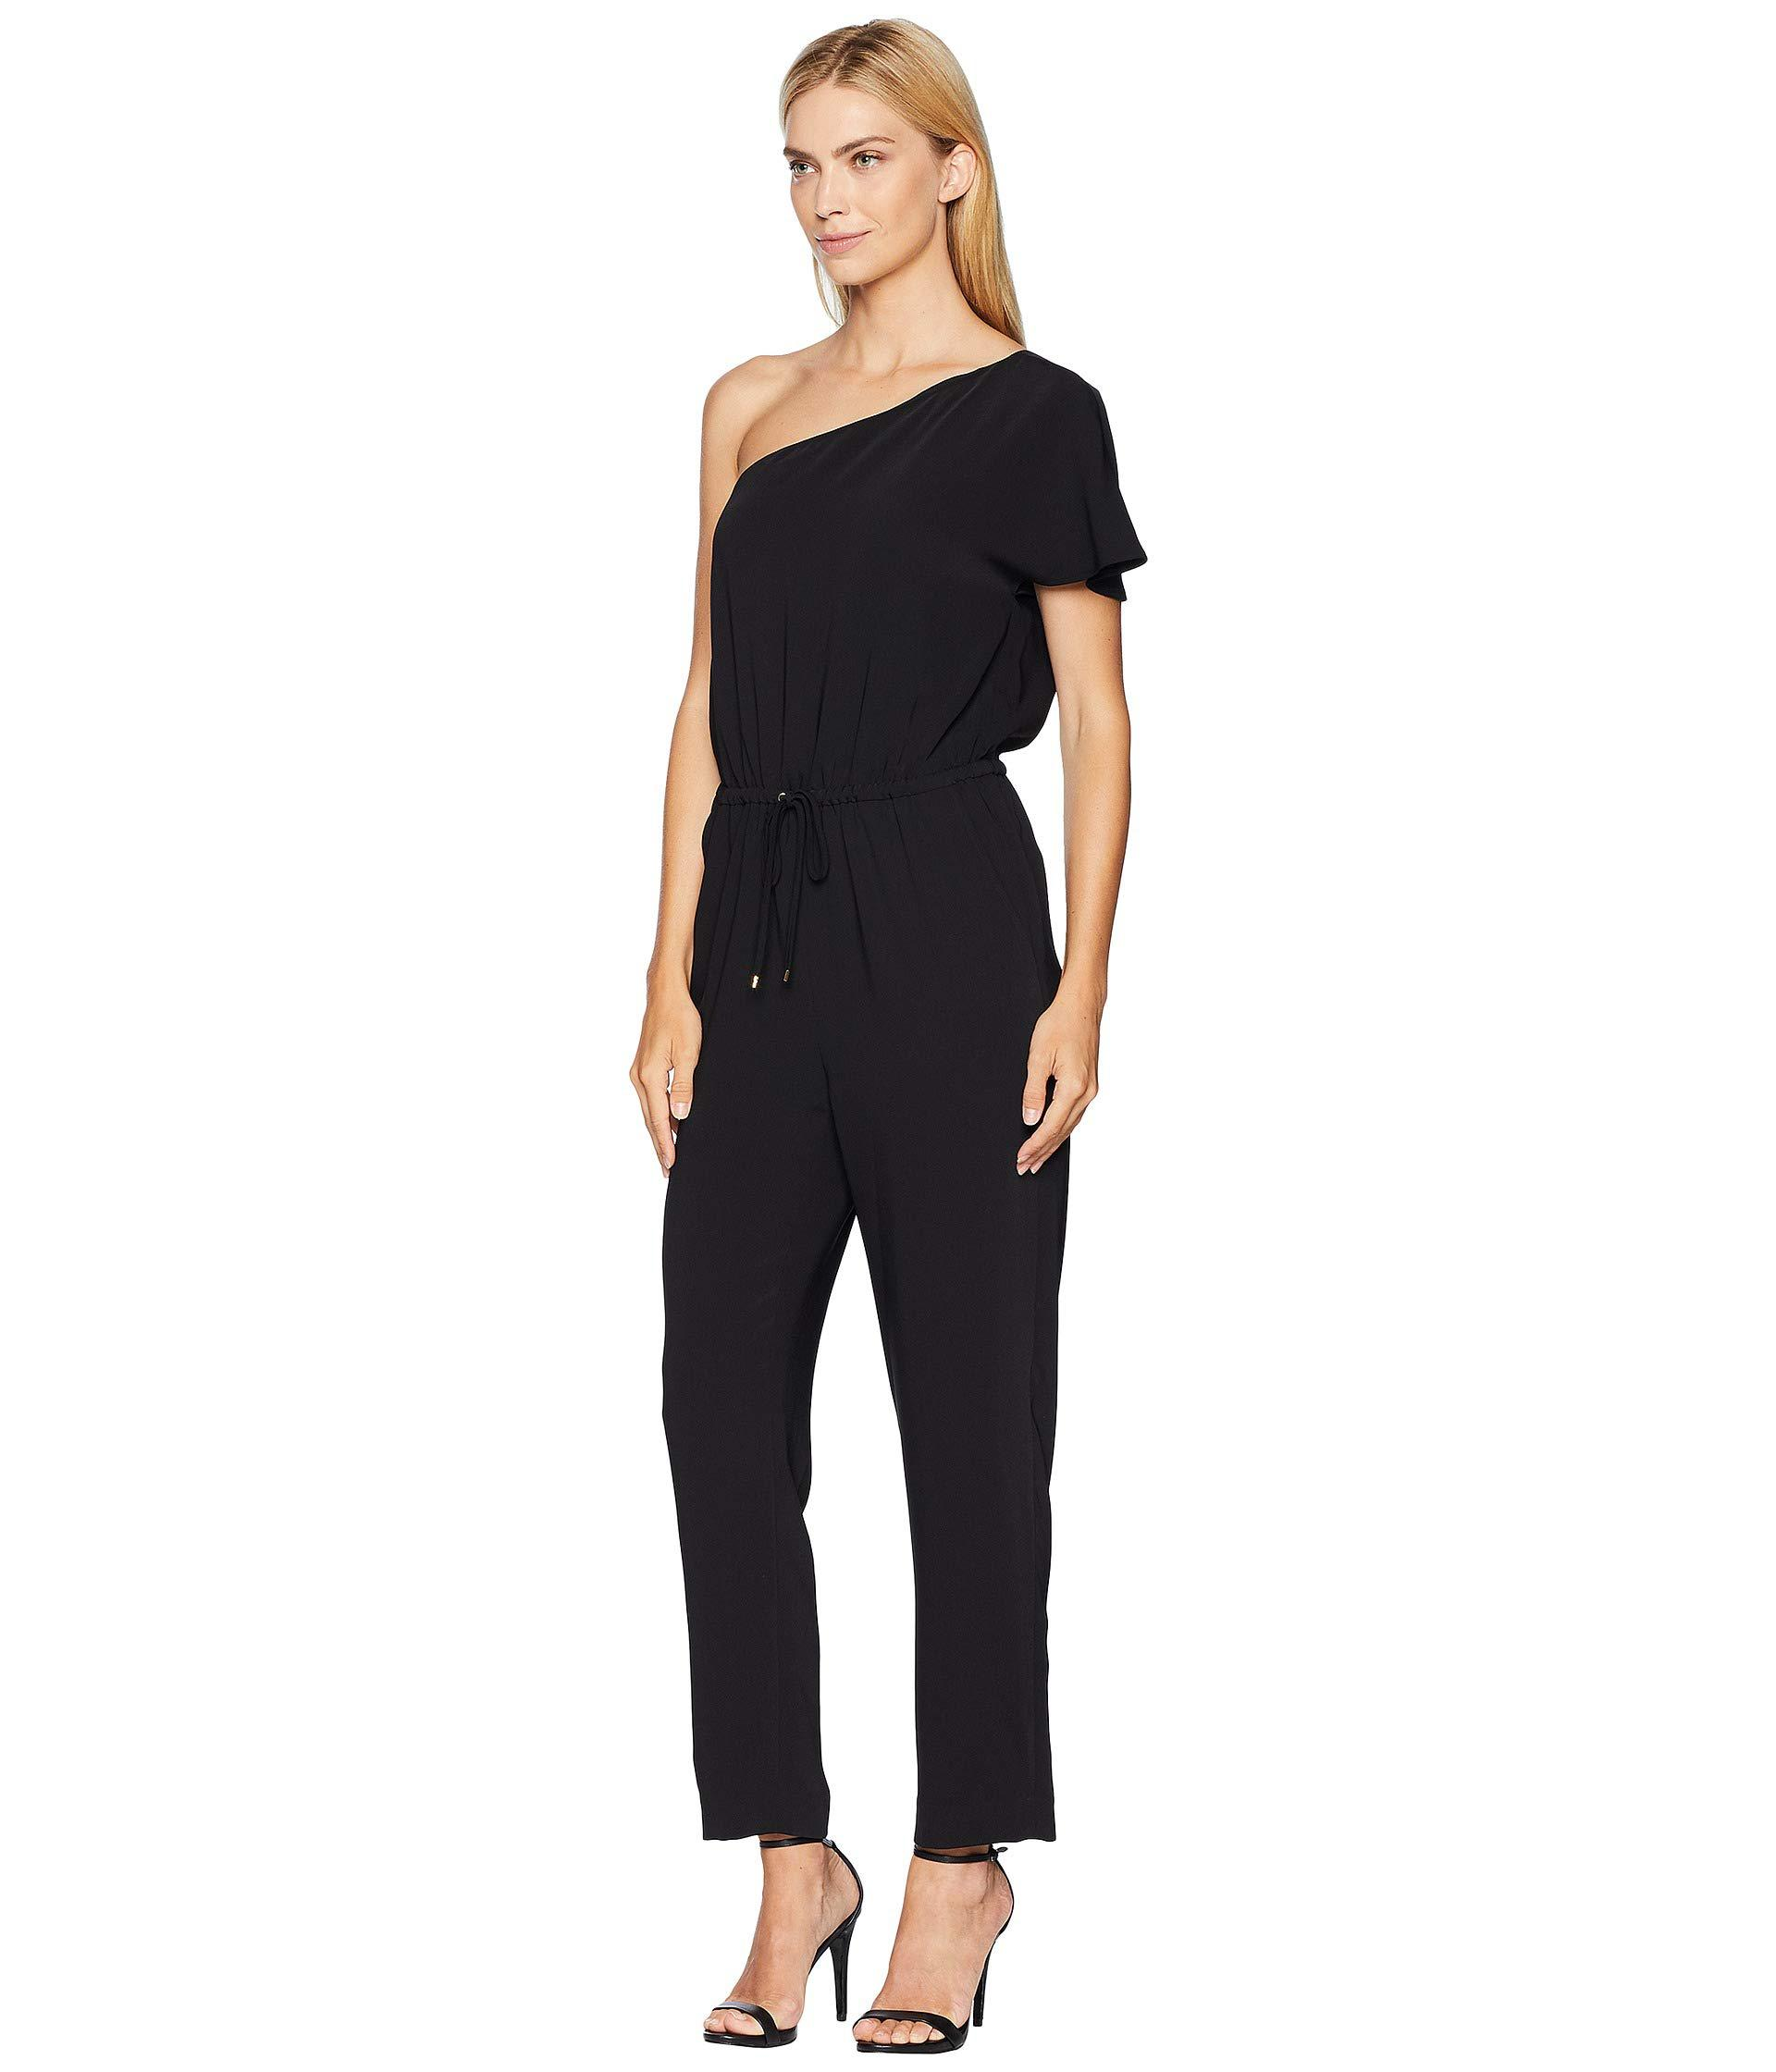 794d78a8c481 Lyst - Lauren by Ralph Lauren Twill One-shoulder Jumpsuit (polo ...